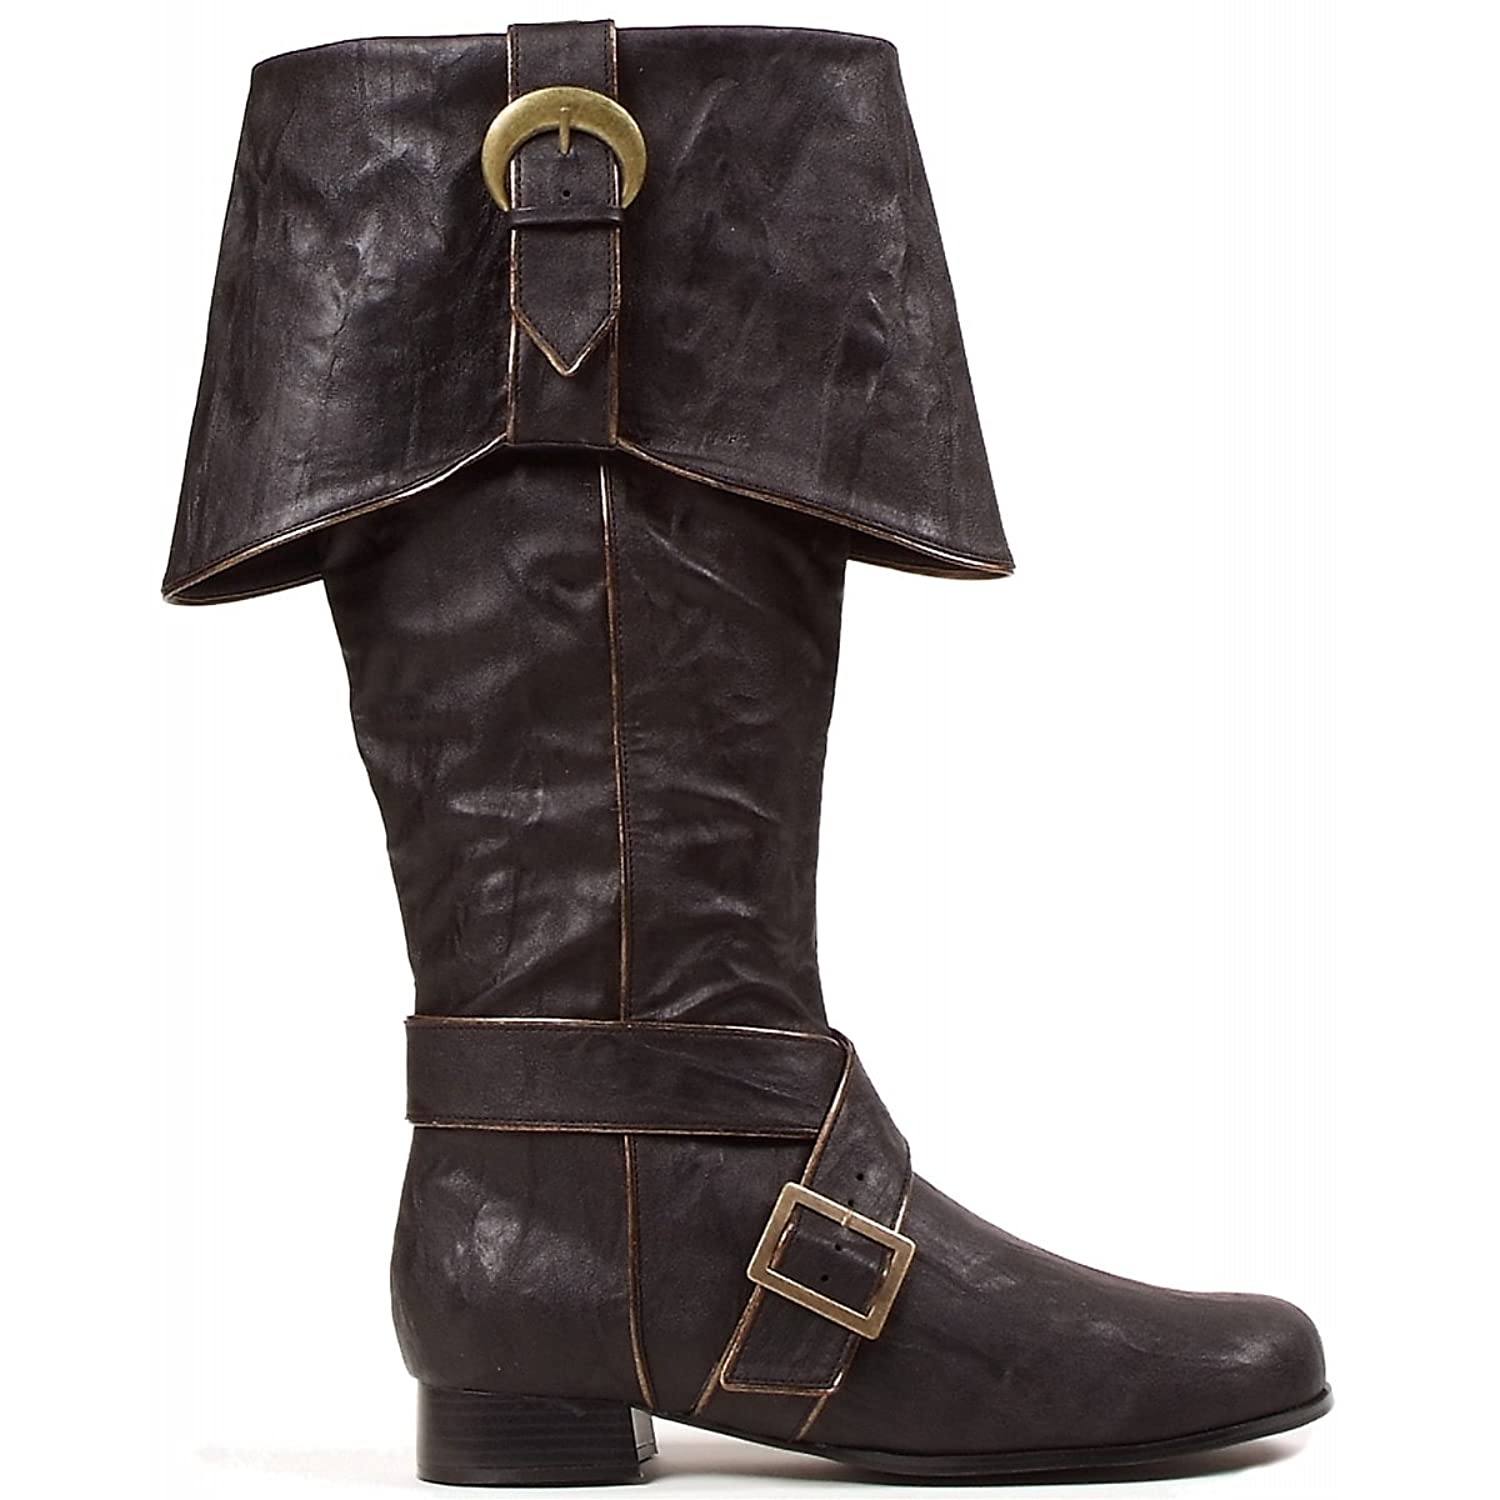 121-Jack Knee High Boots Costume Shoes - Medium